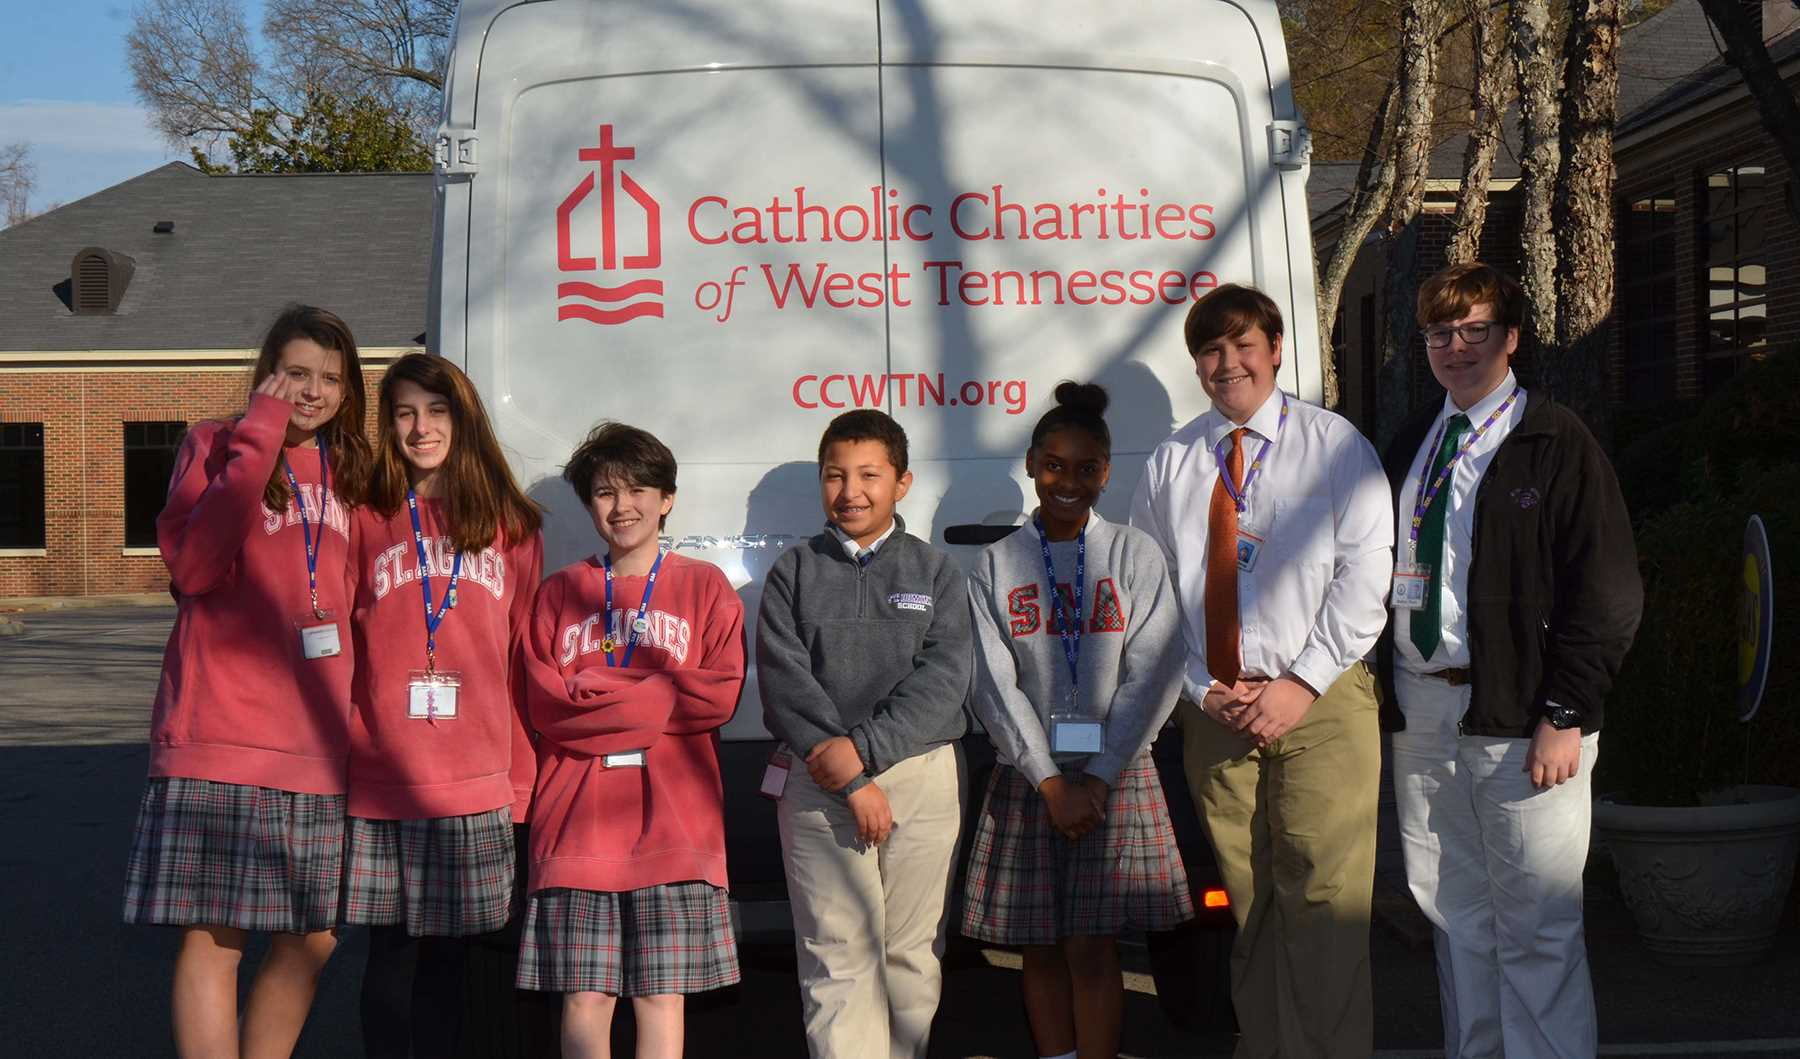 Serving Our Community | St. Agnes Academy-St. Dominic School